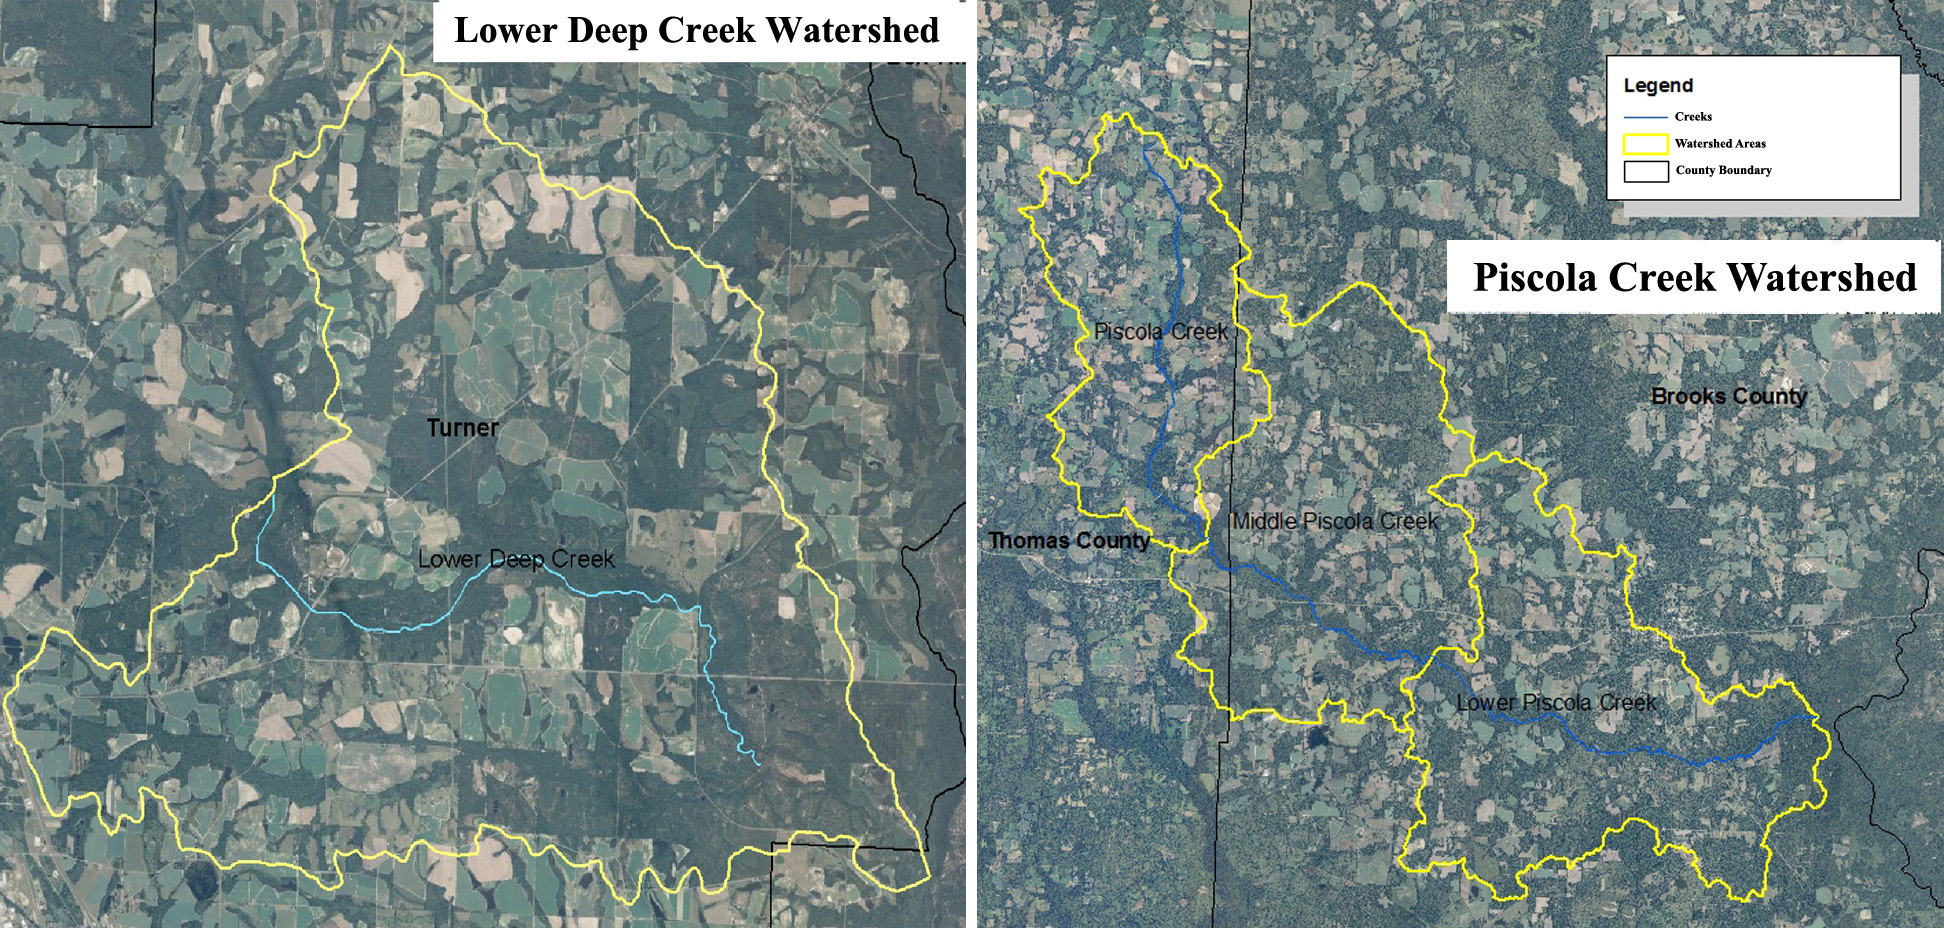 Above are maps of the four priority watersheds in Georgia. Left is Lower Deep Creek, located in Turner County and right is the Upper and Middle Piscola Creek, located in Thomas and Brooks Counties and Lower Piscola Creek located in Brooks County.